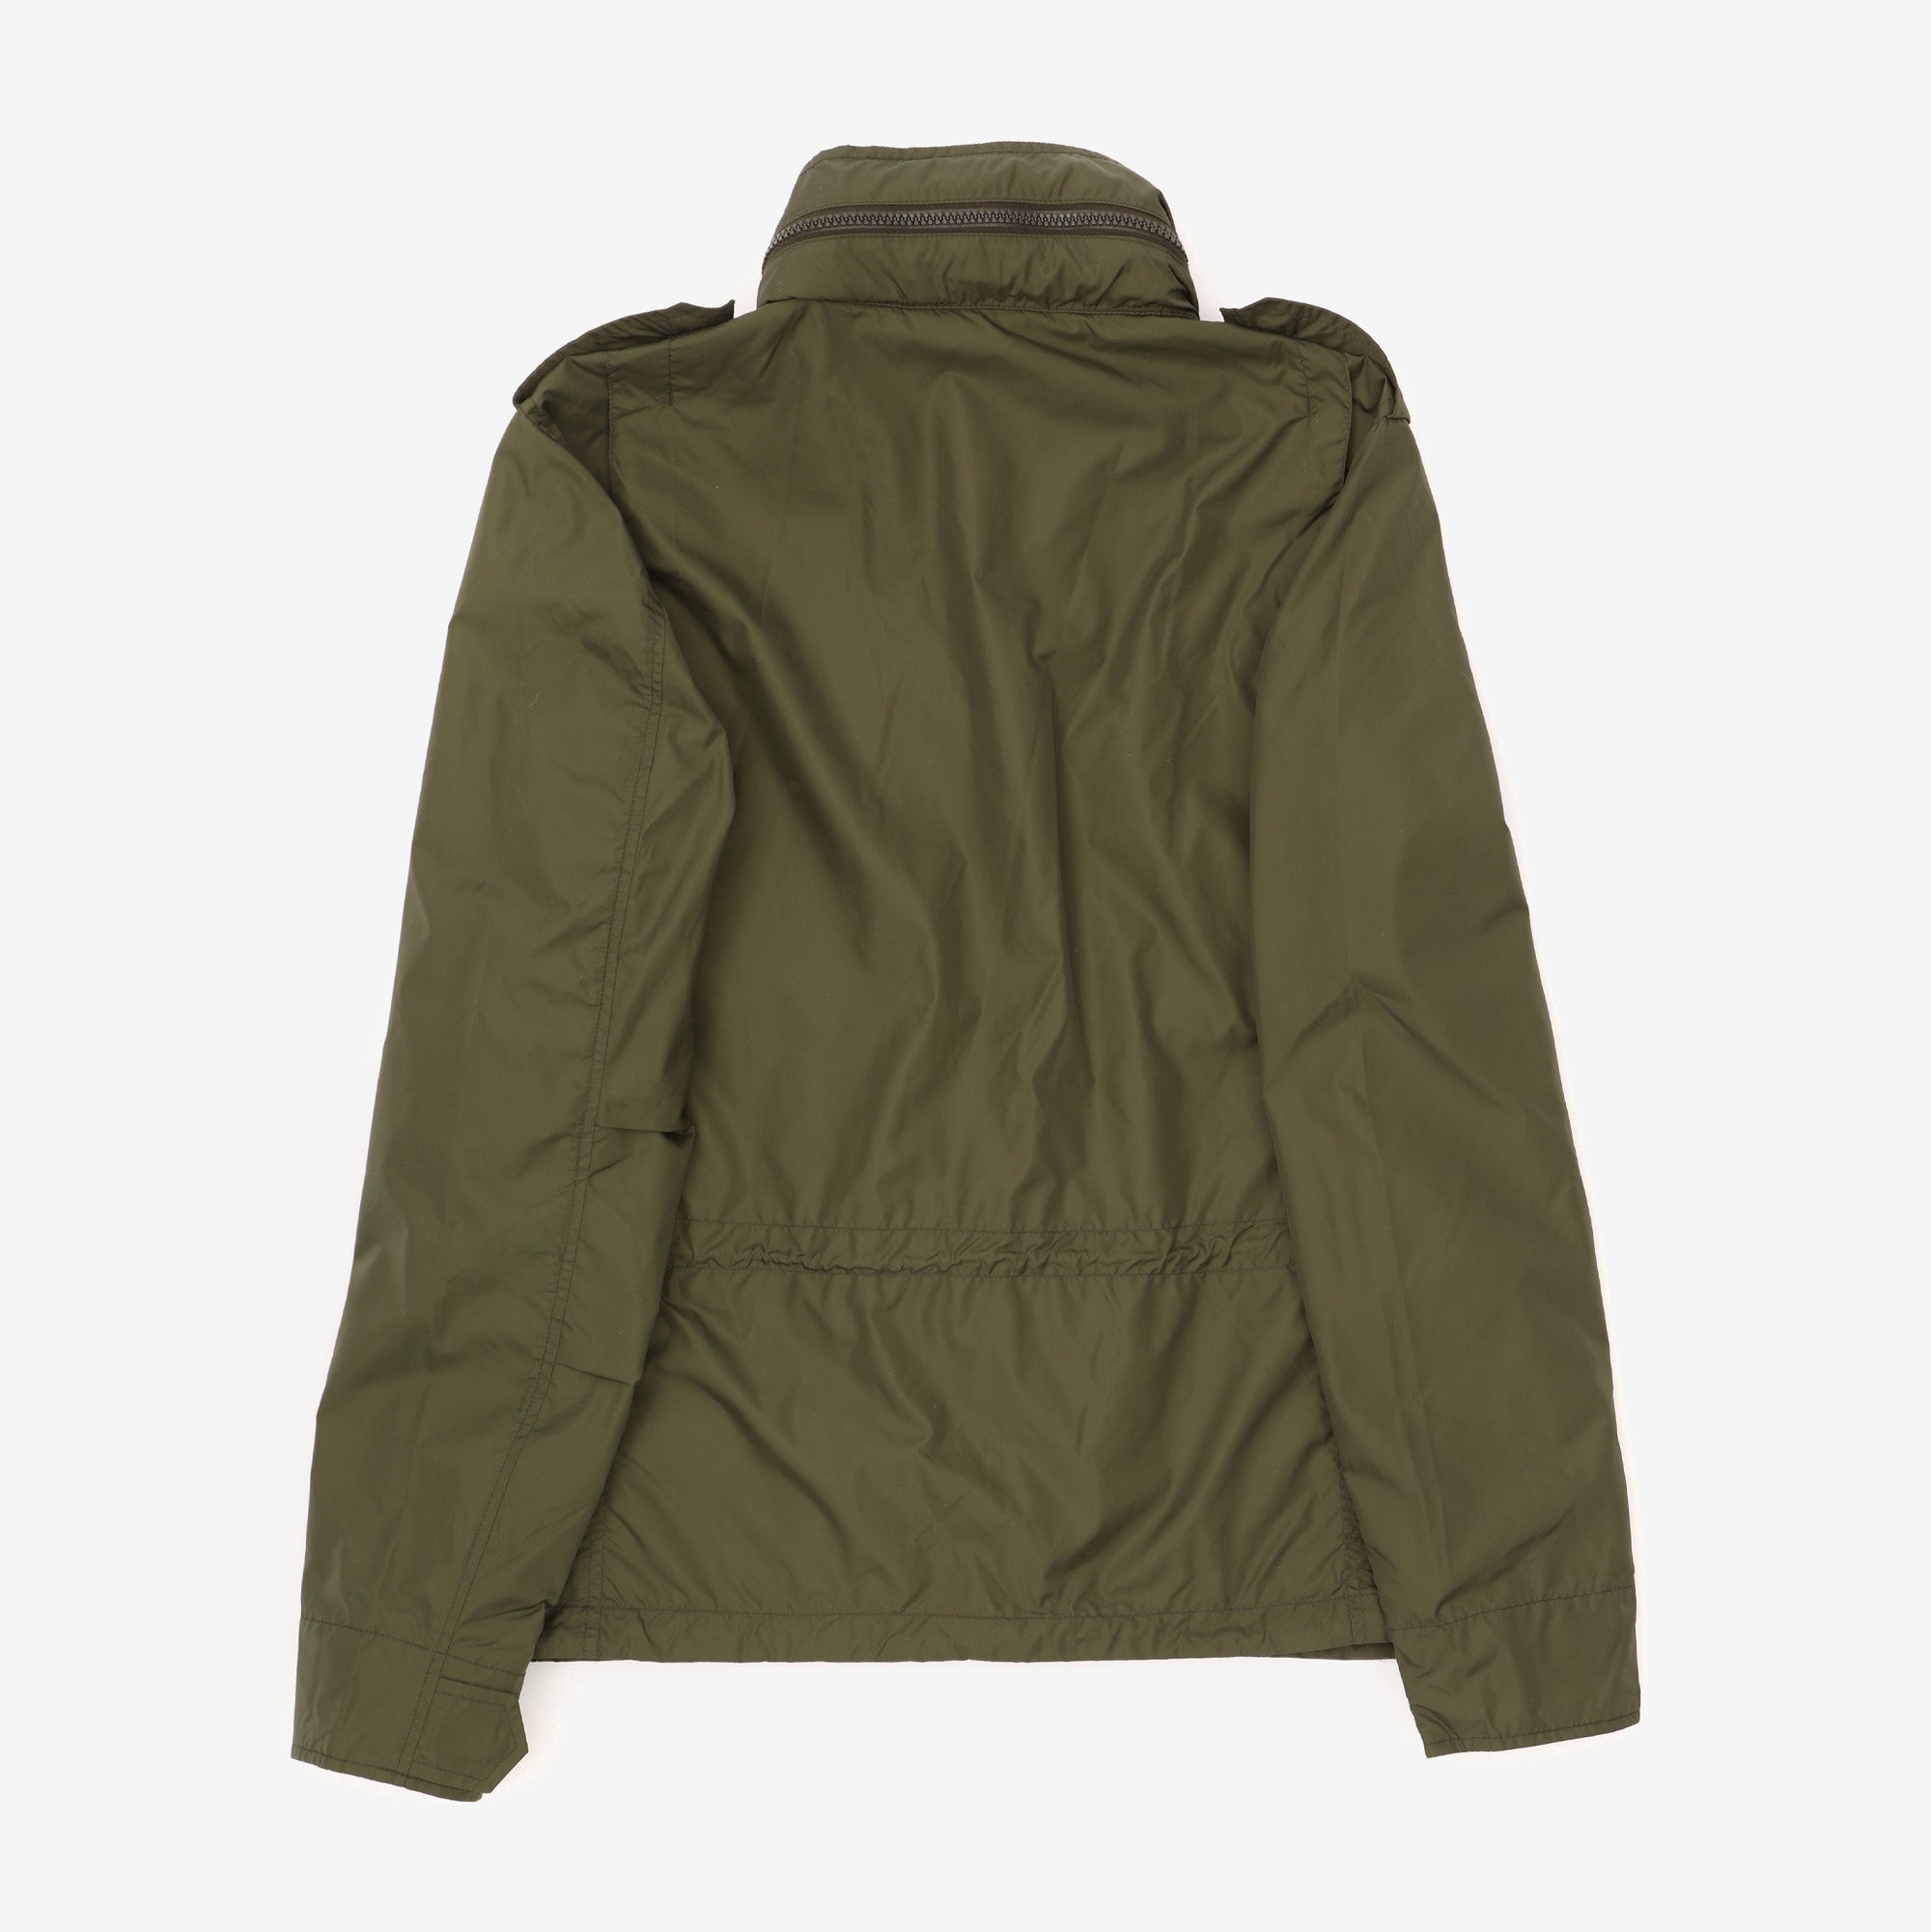 M-65 Nylon Field Jacket